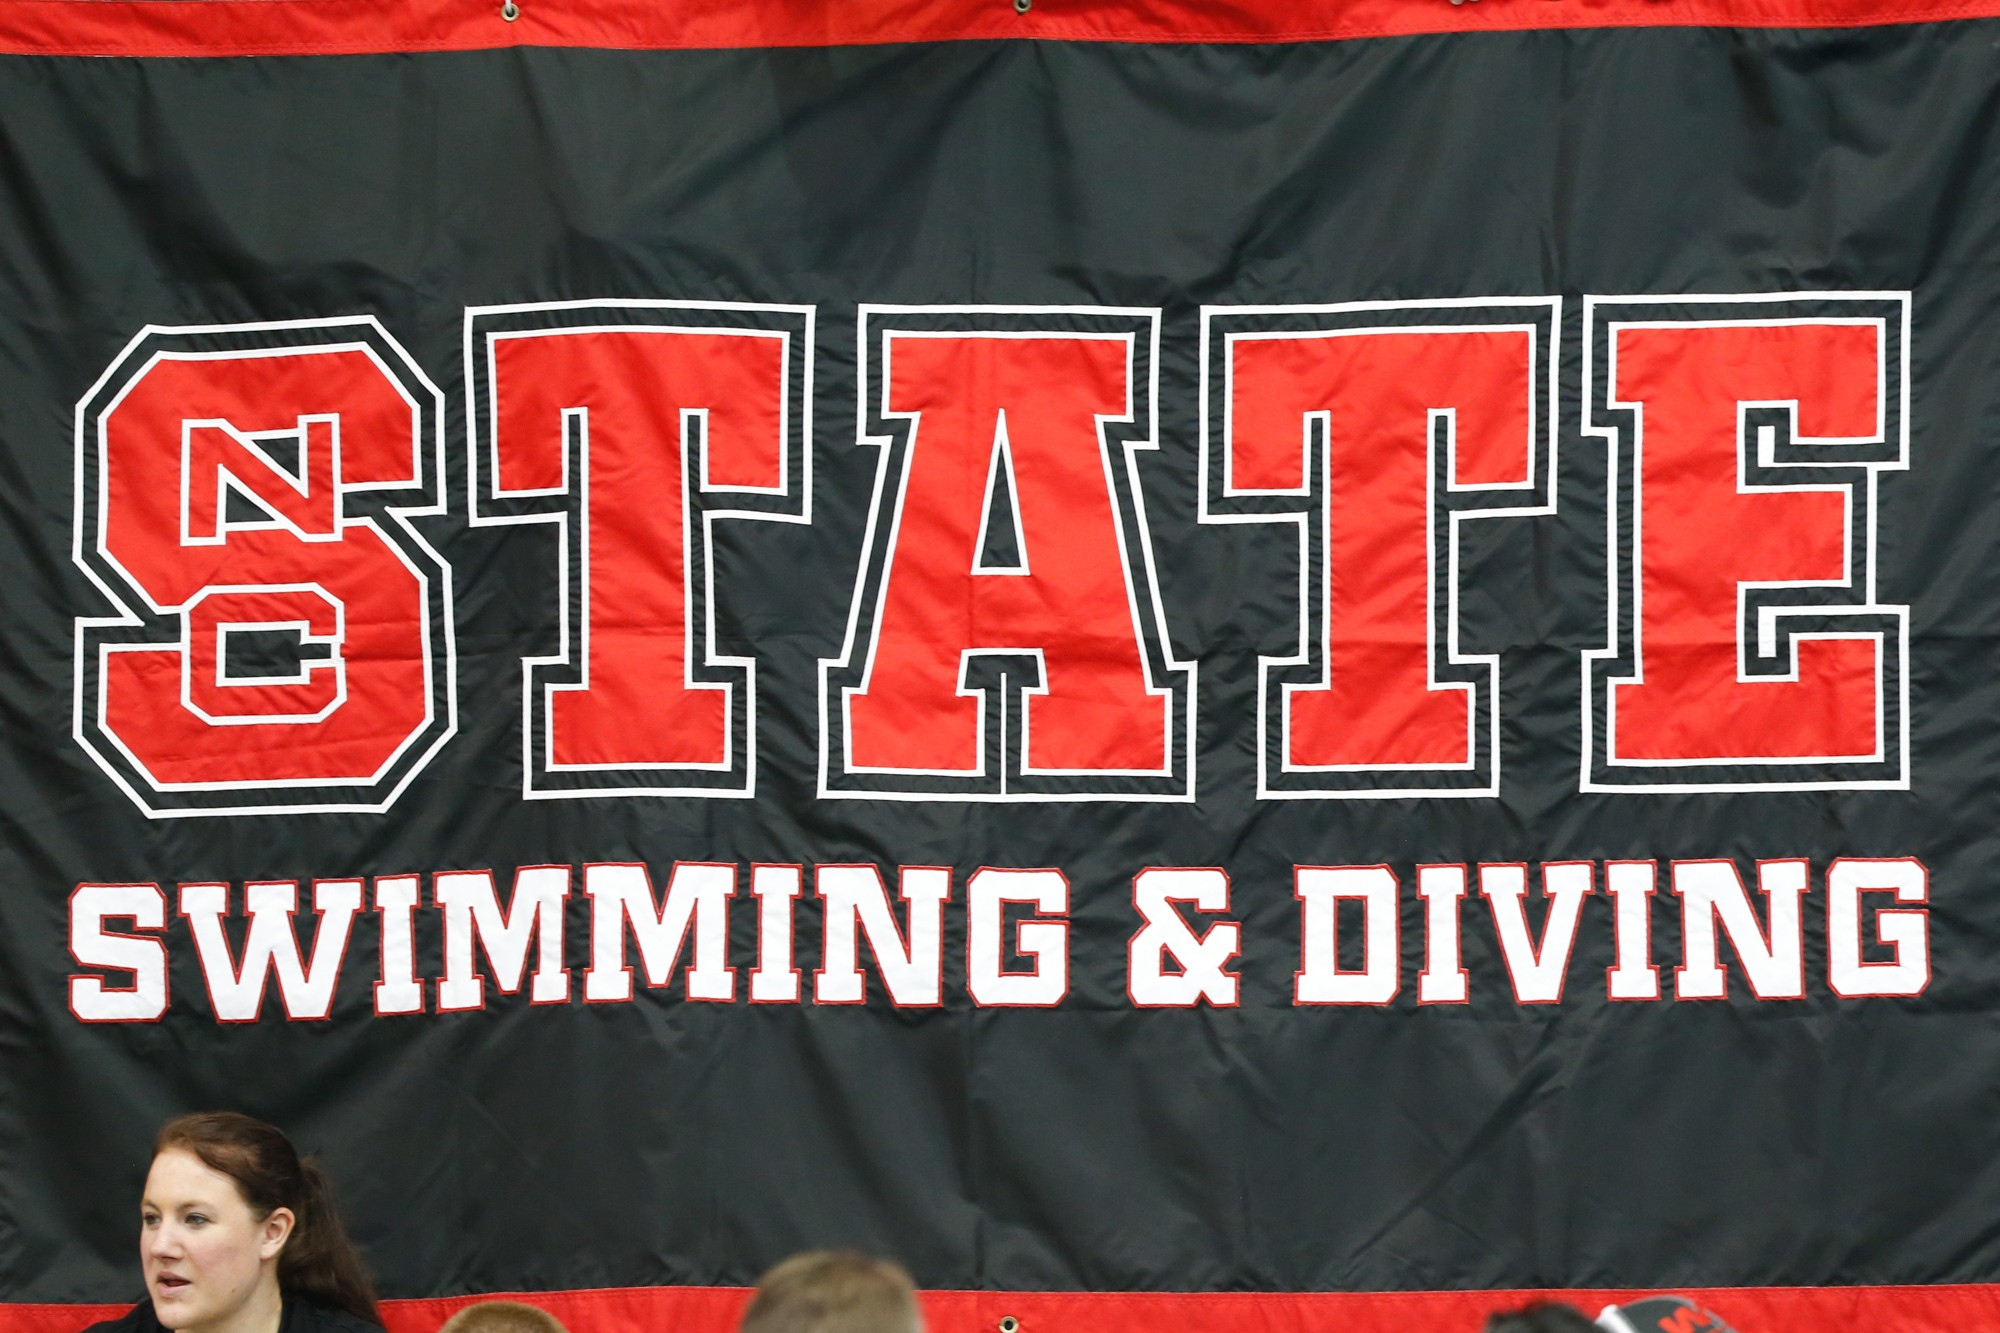 UA swimming and diving 13th at NCAA Championships